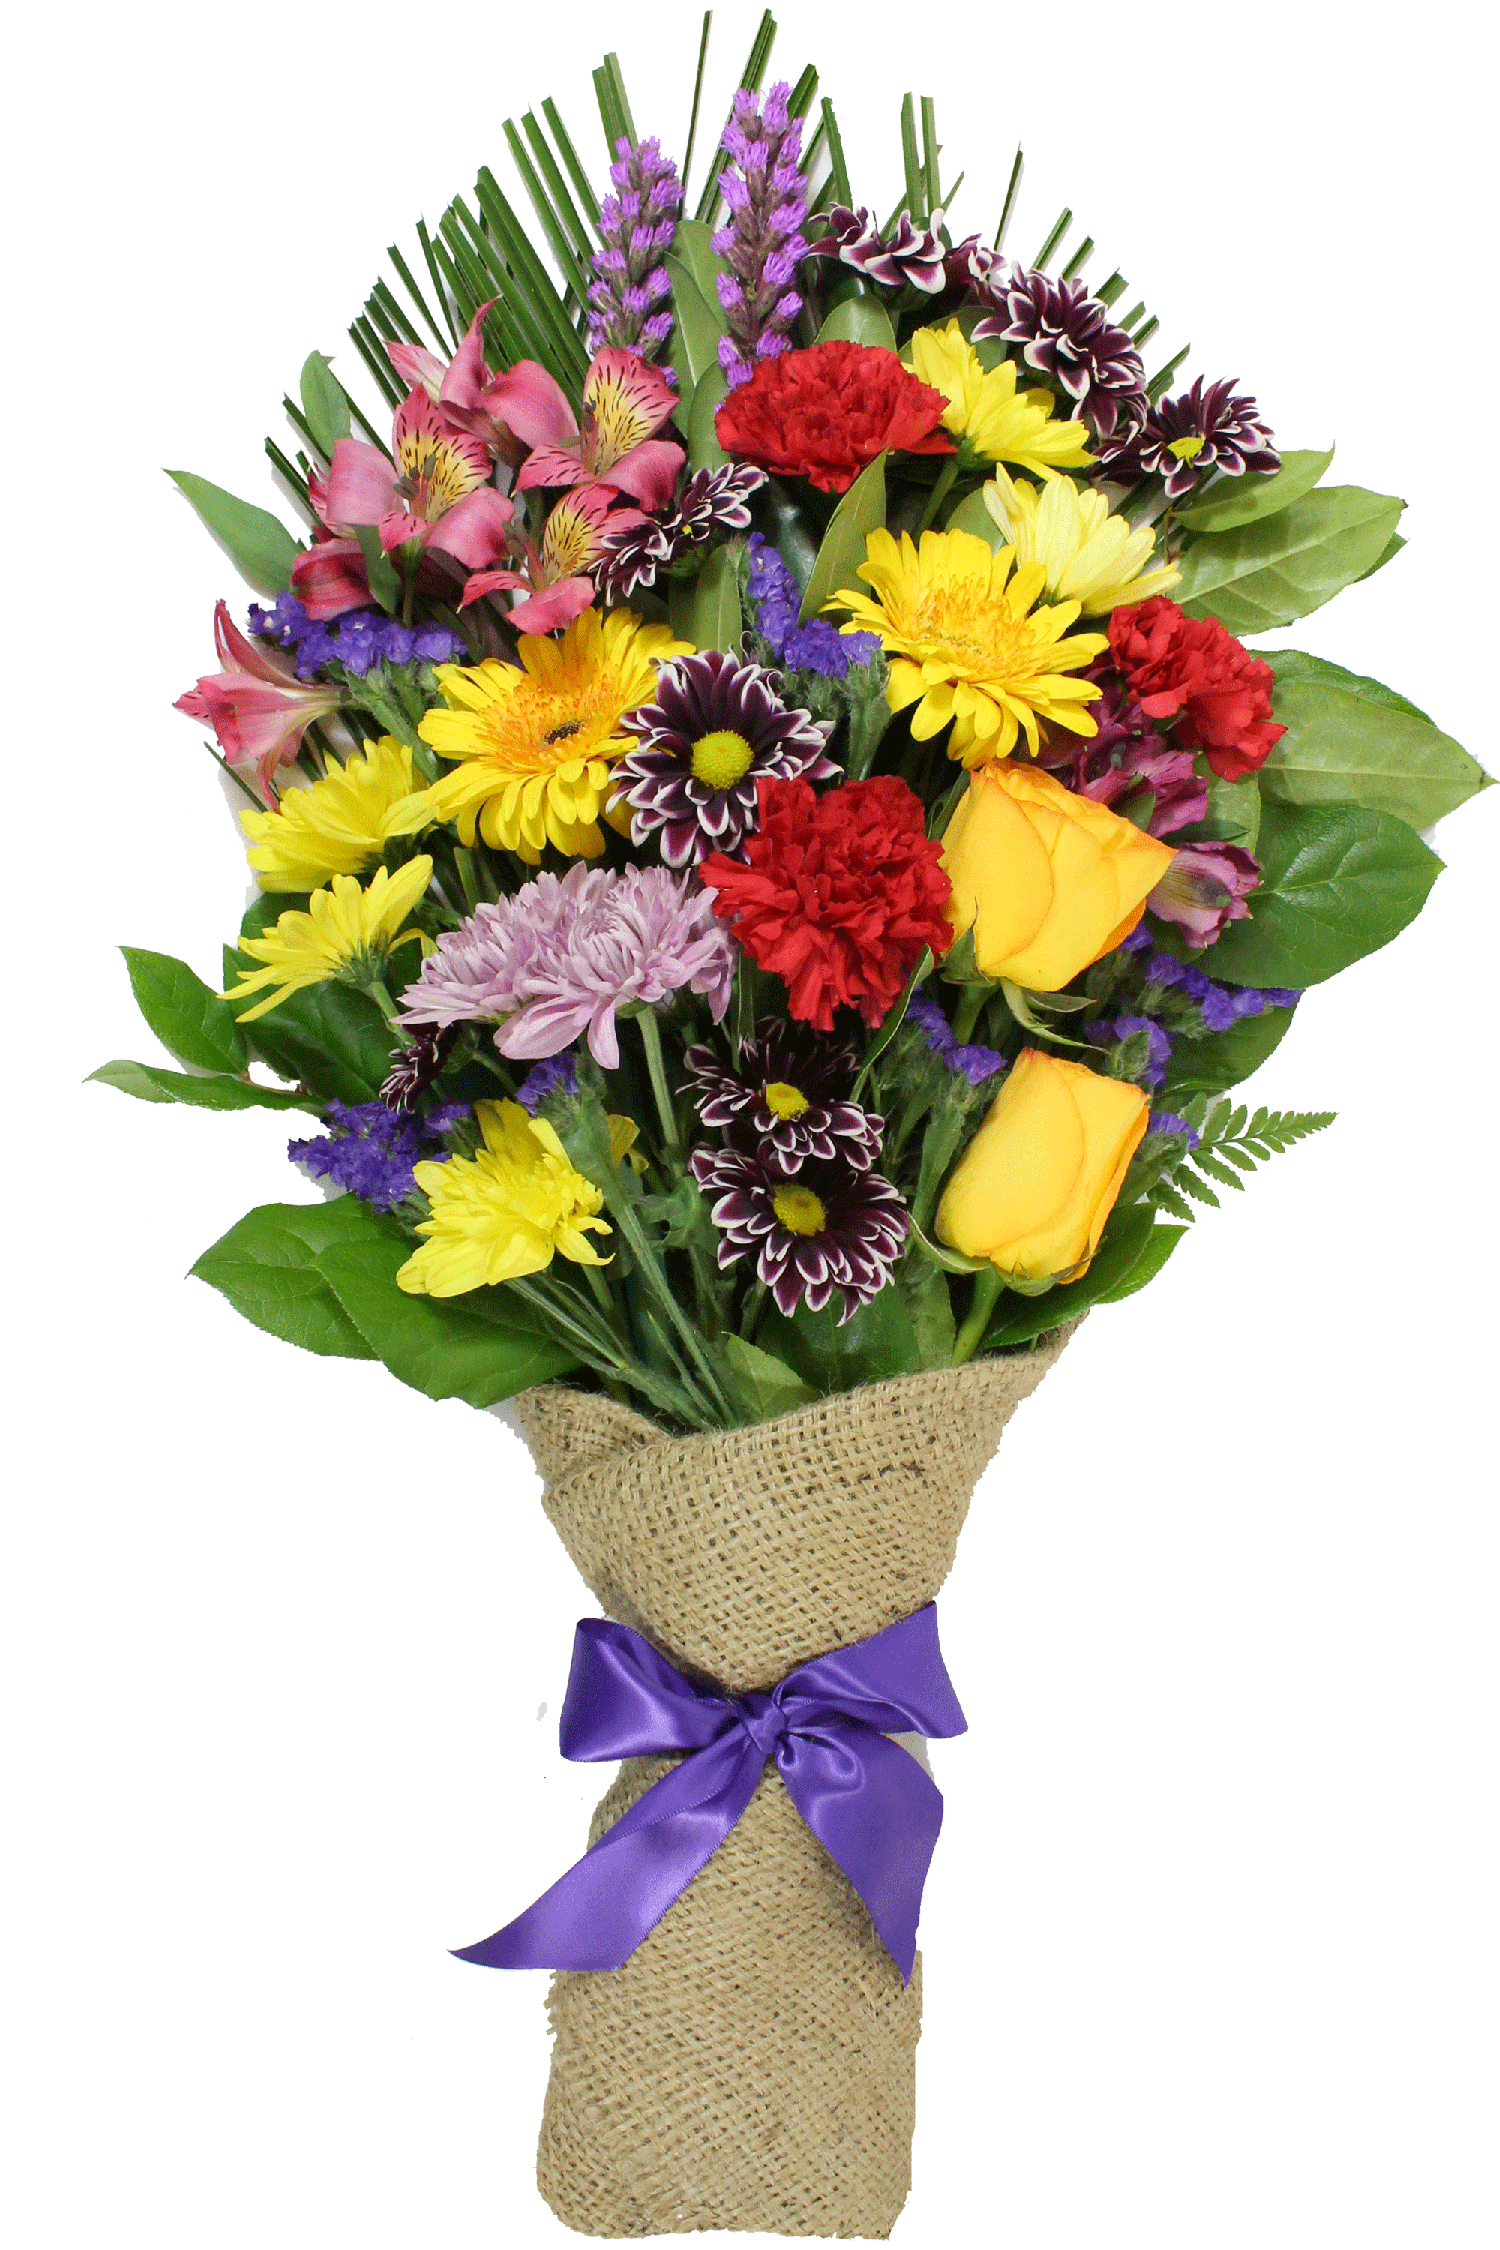 Floral bouquet png. Nectar flower delivery cross